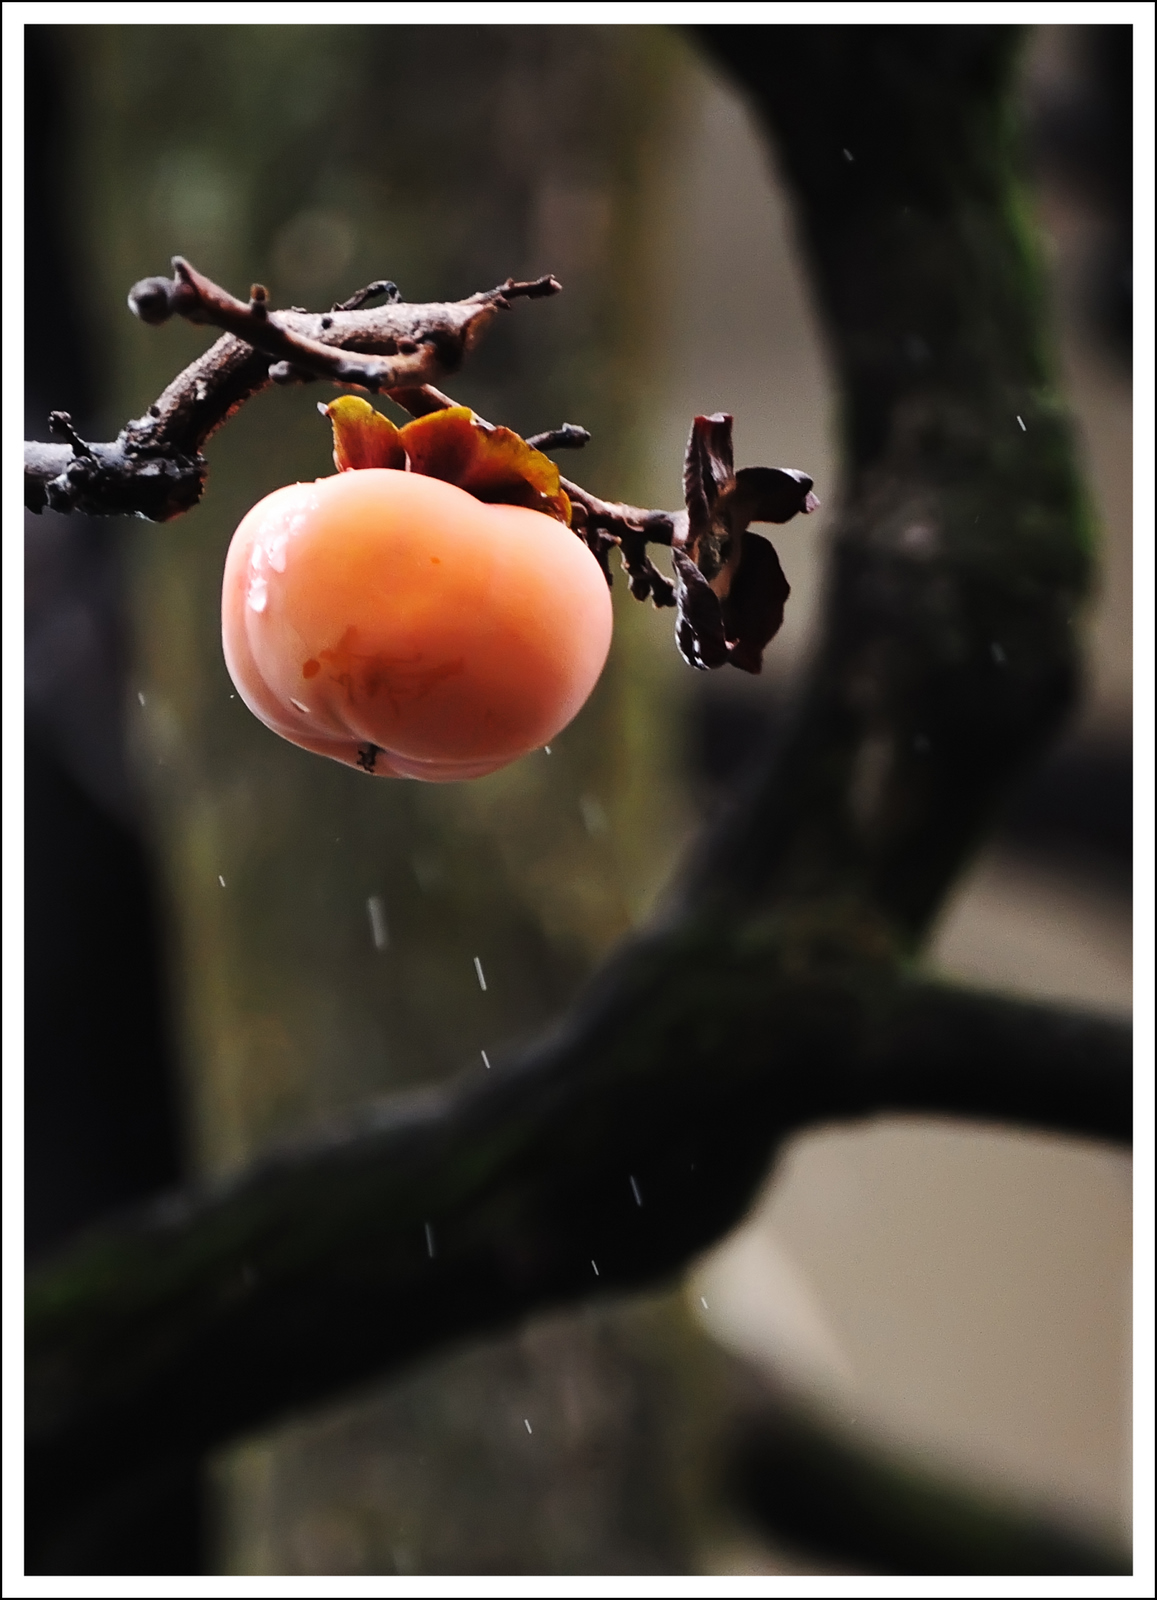 Day 347  Monday December 13<br /> It was a cold, rainy day today, so I didn't wander far with my camera.  Our neighbor has a persimmon tree.  She has picked the persimmons, but has left four or five for the birds.